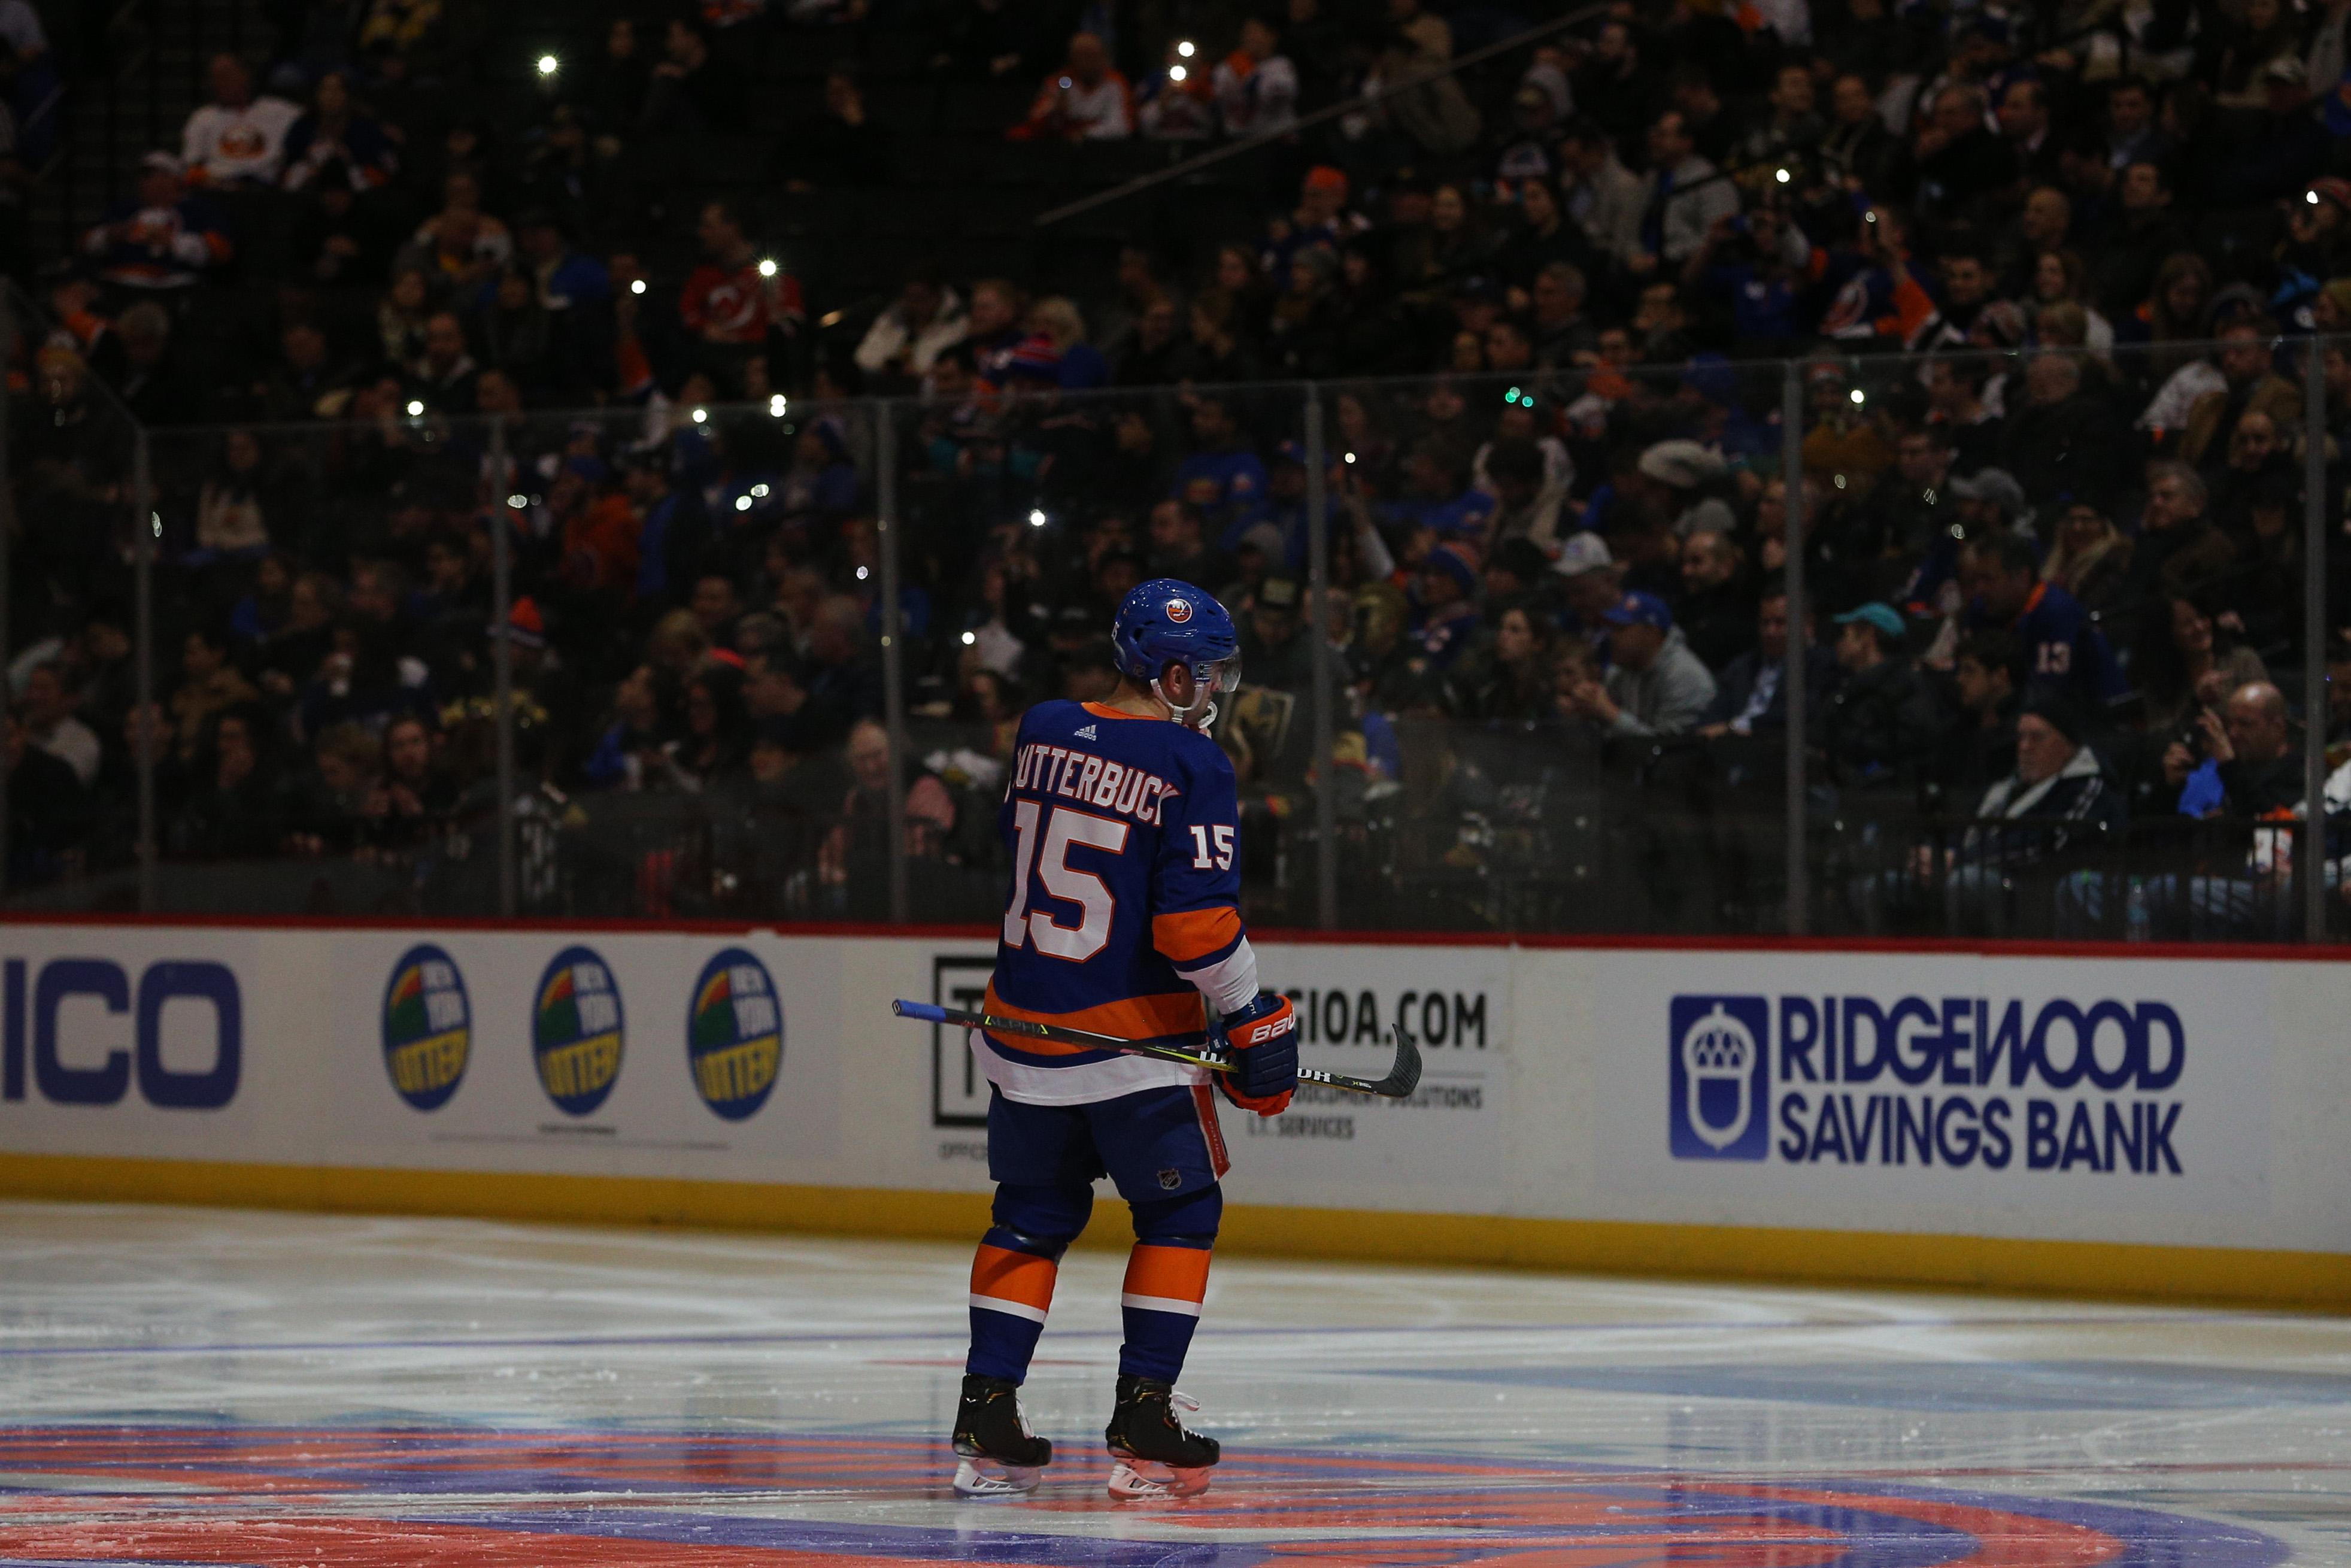 Dec 12, 2018; Brooklyn, NY, USA; Fans hold up cellphone lights from the stands during a lighting delay before the start of the third period between the New York Islanders and the Vegas Golden Knights at Barclays Center. Mandatory Credit: Brad Penner-USA TODAY Sports